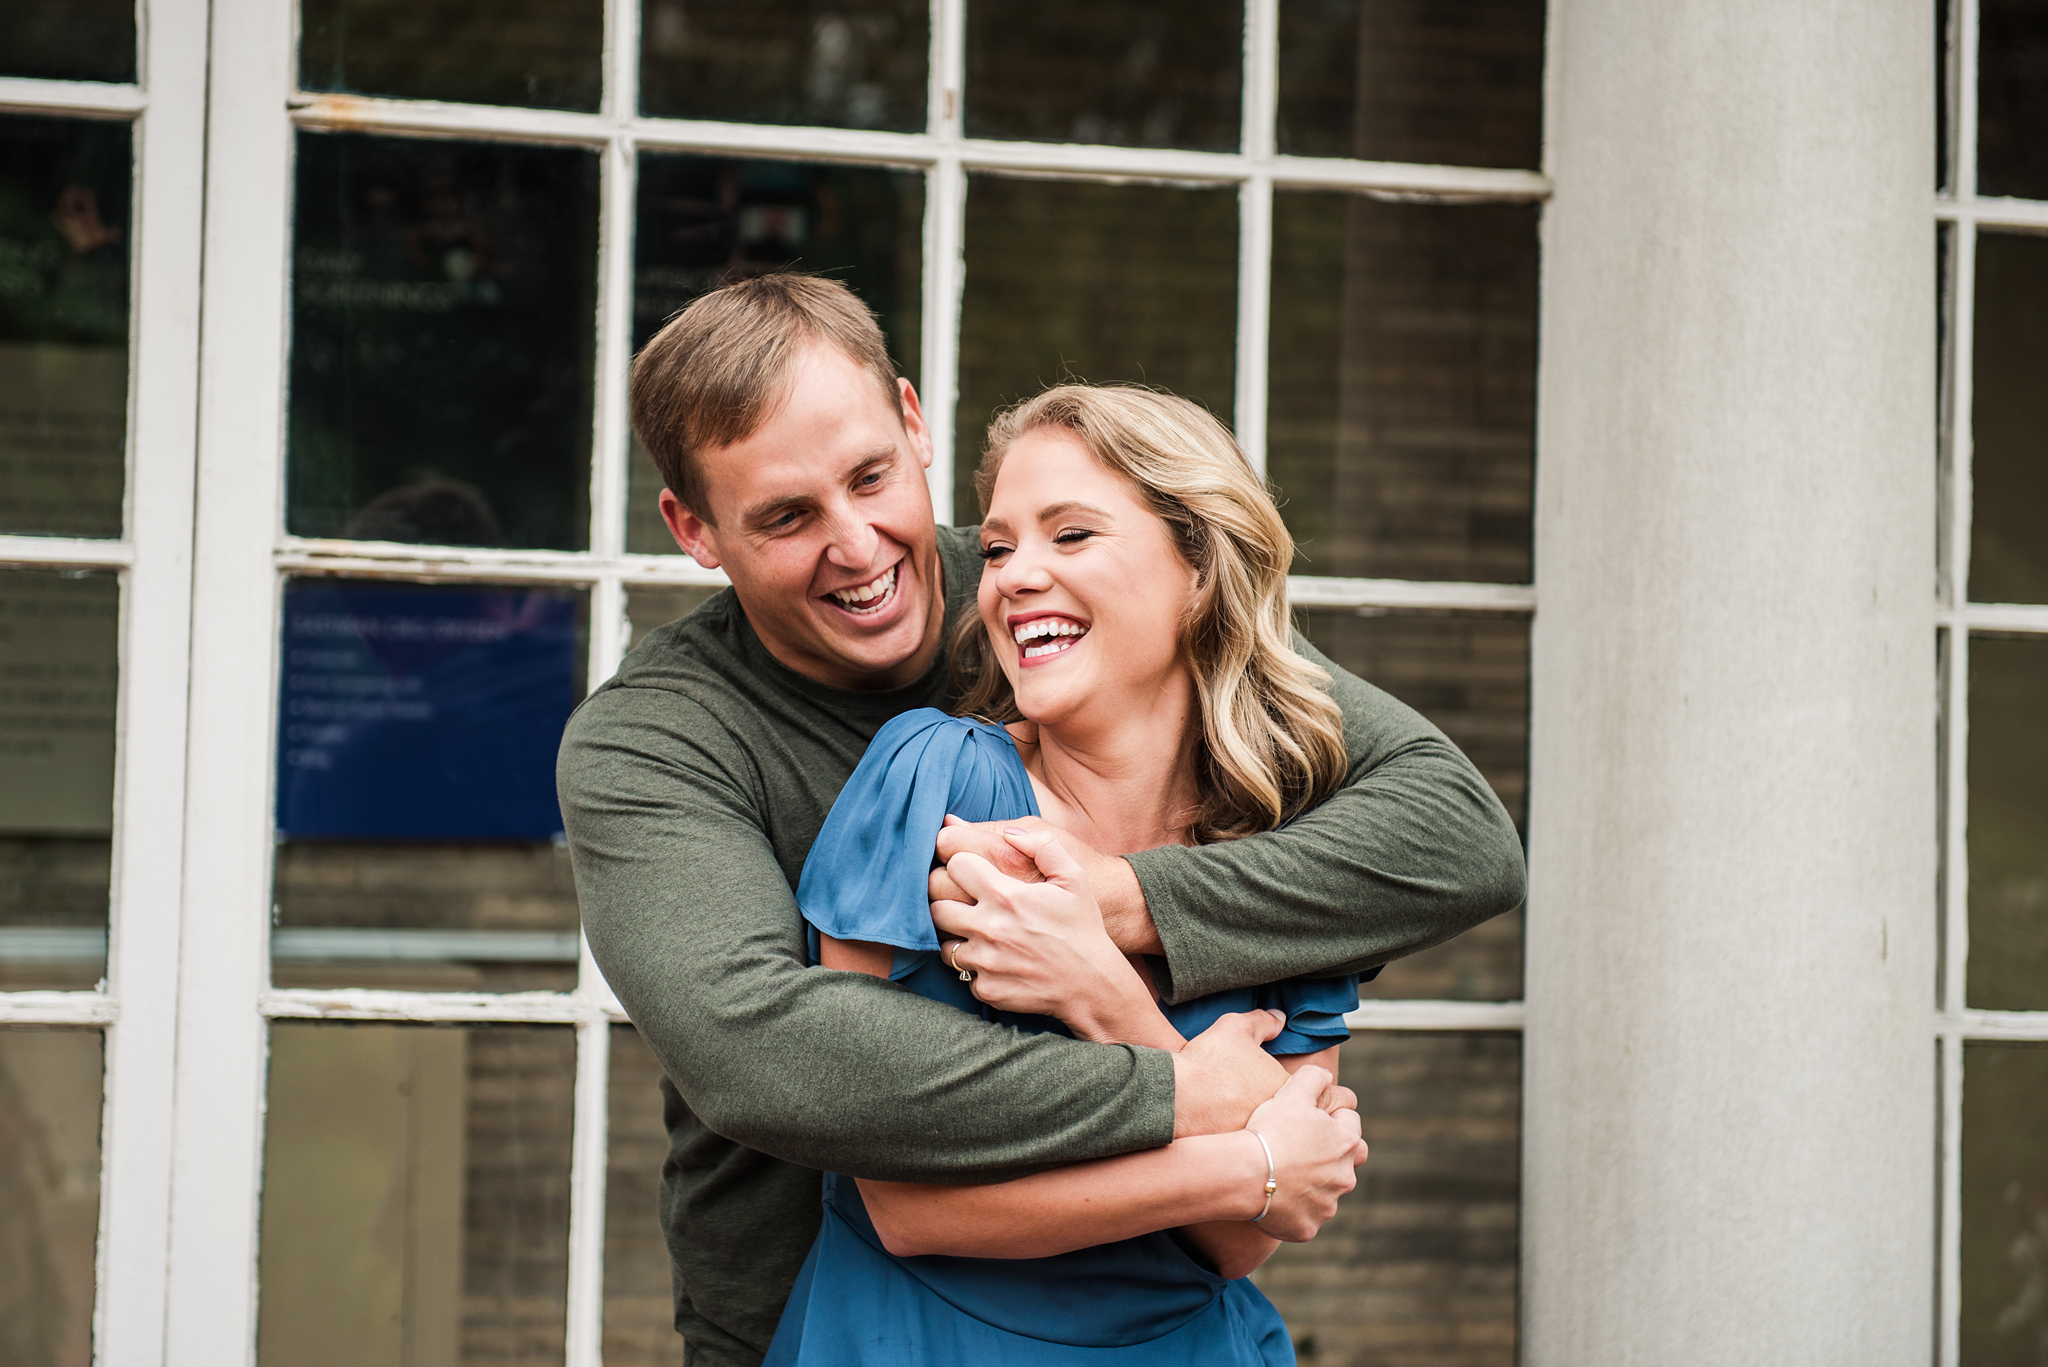 George_Eastman_House_Rochester_Yacht_Club_Rochester_Engagement_Session_JILL_STUDIO_Rochester_NY_Photographer_DSC_8087.jpg